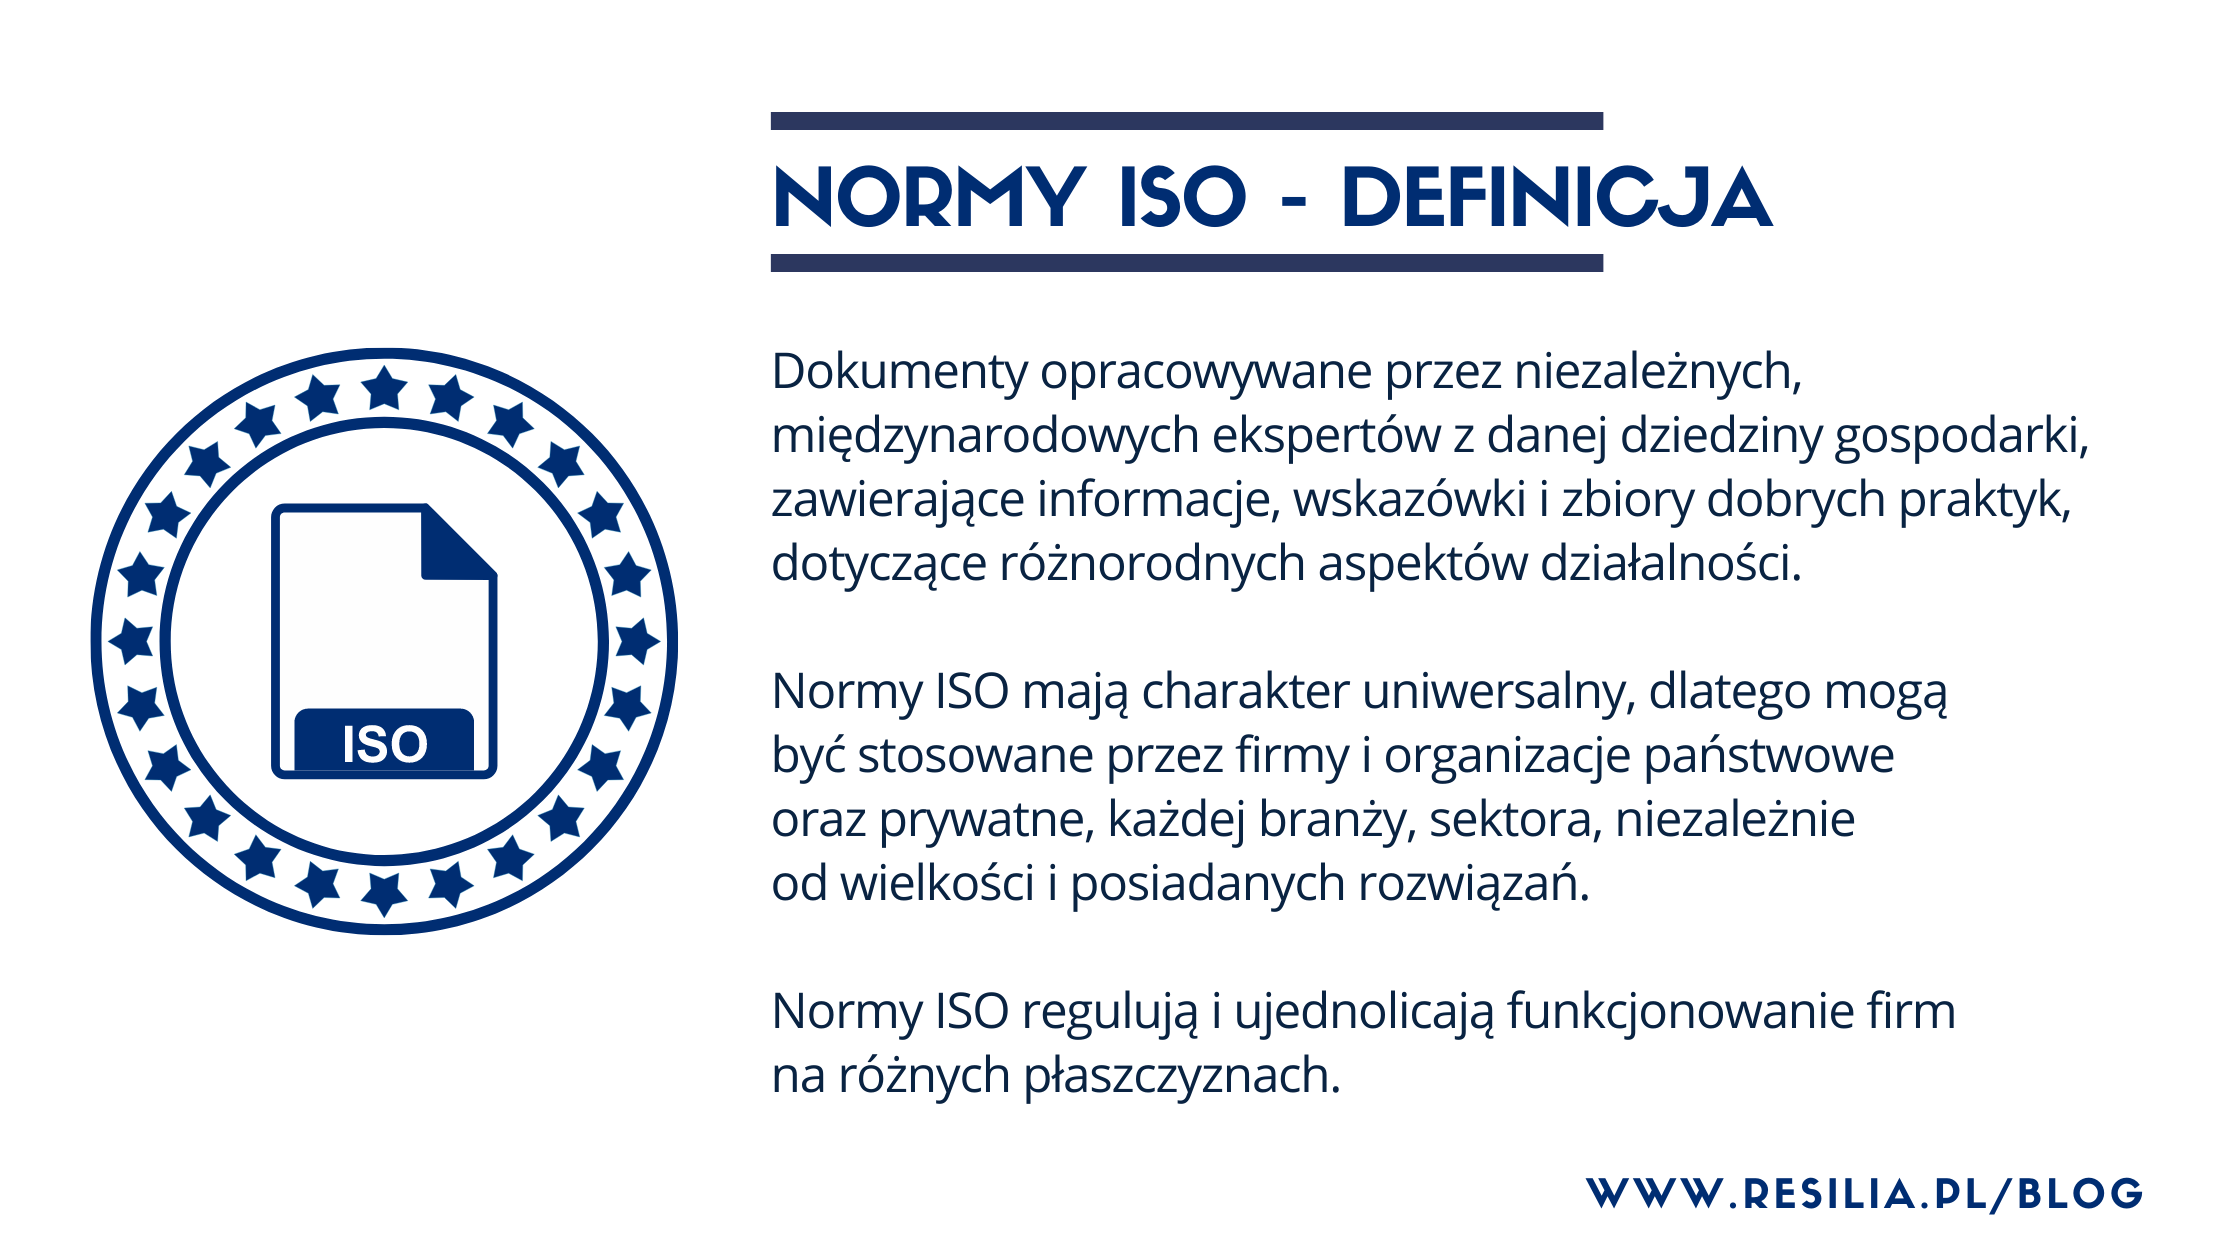 Normy ISO - co to jest? Definicja